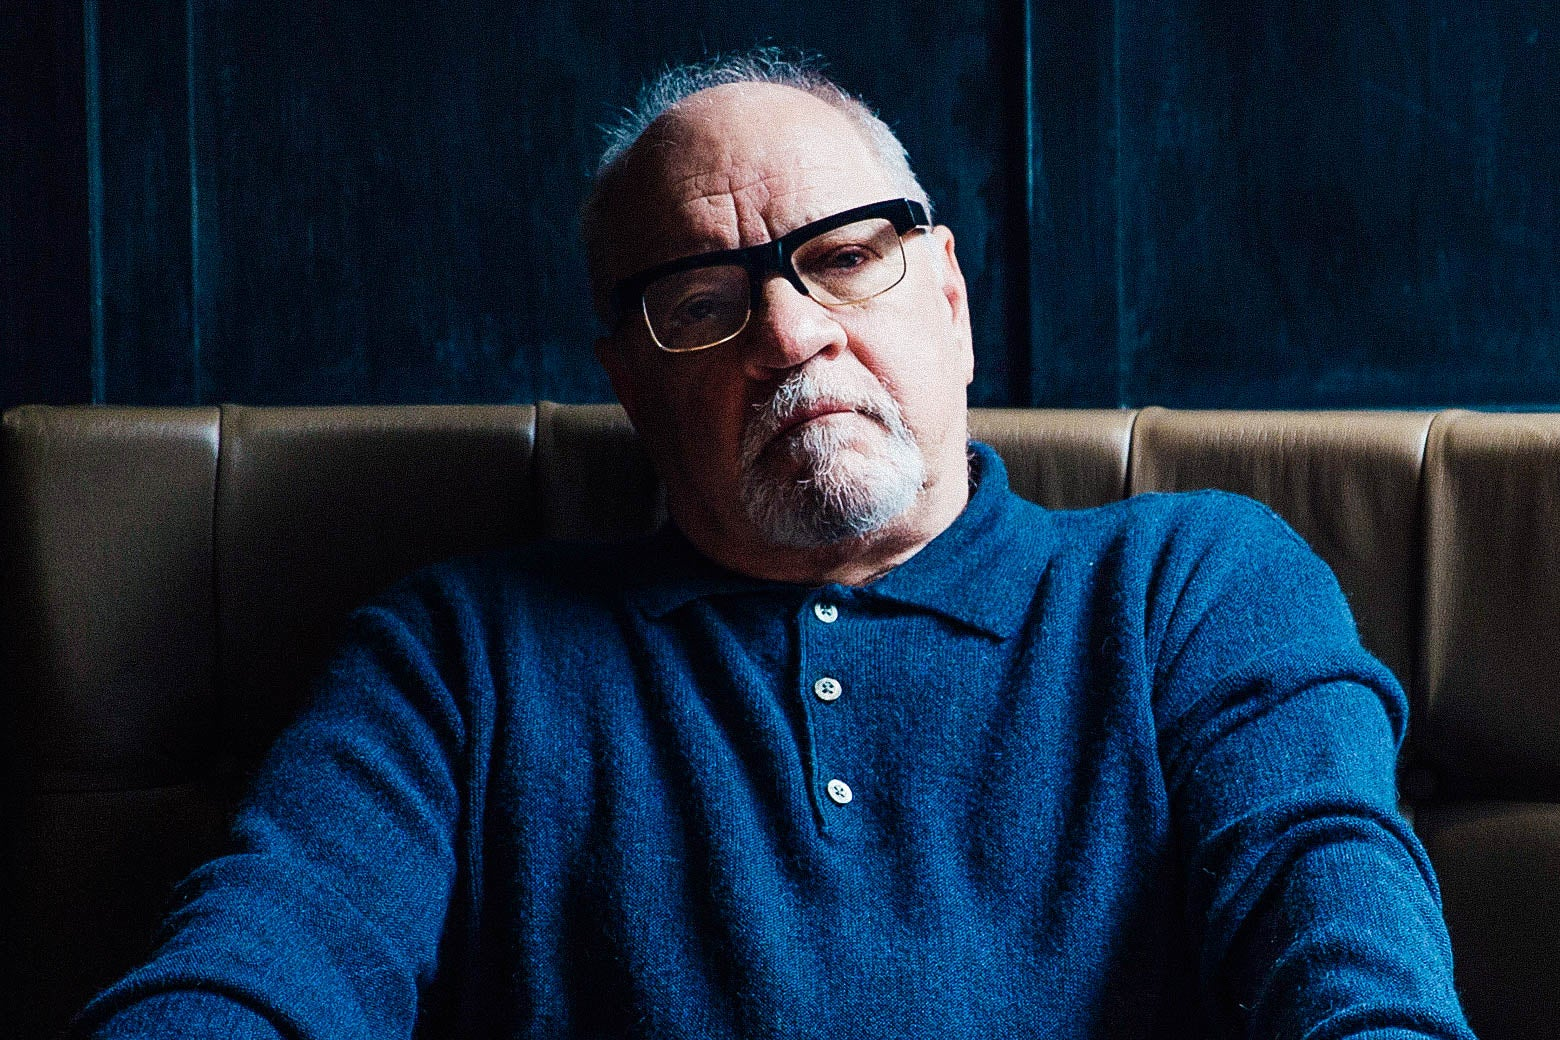 Paul Schrader in a blue shirt on a brown couch.